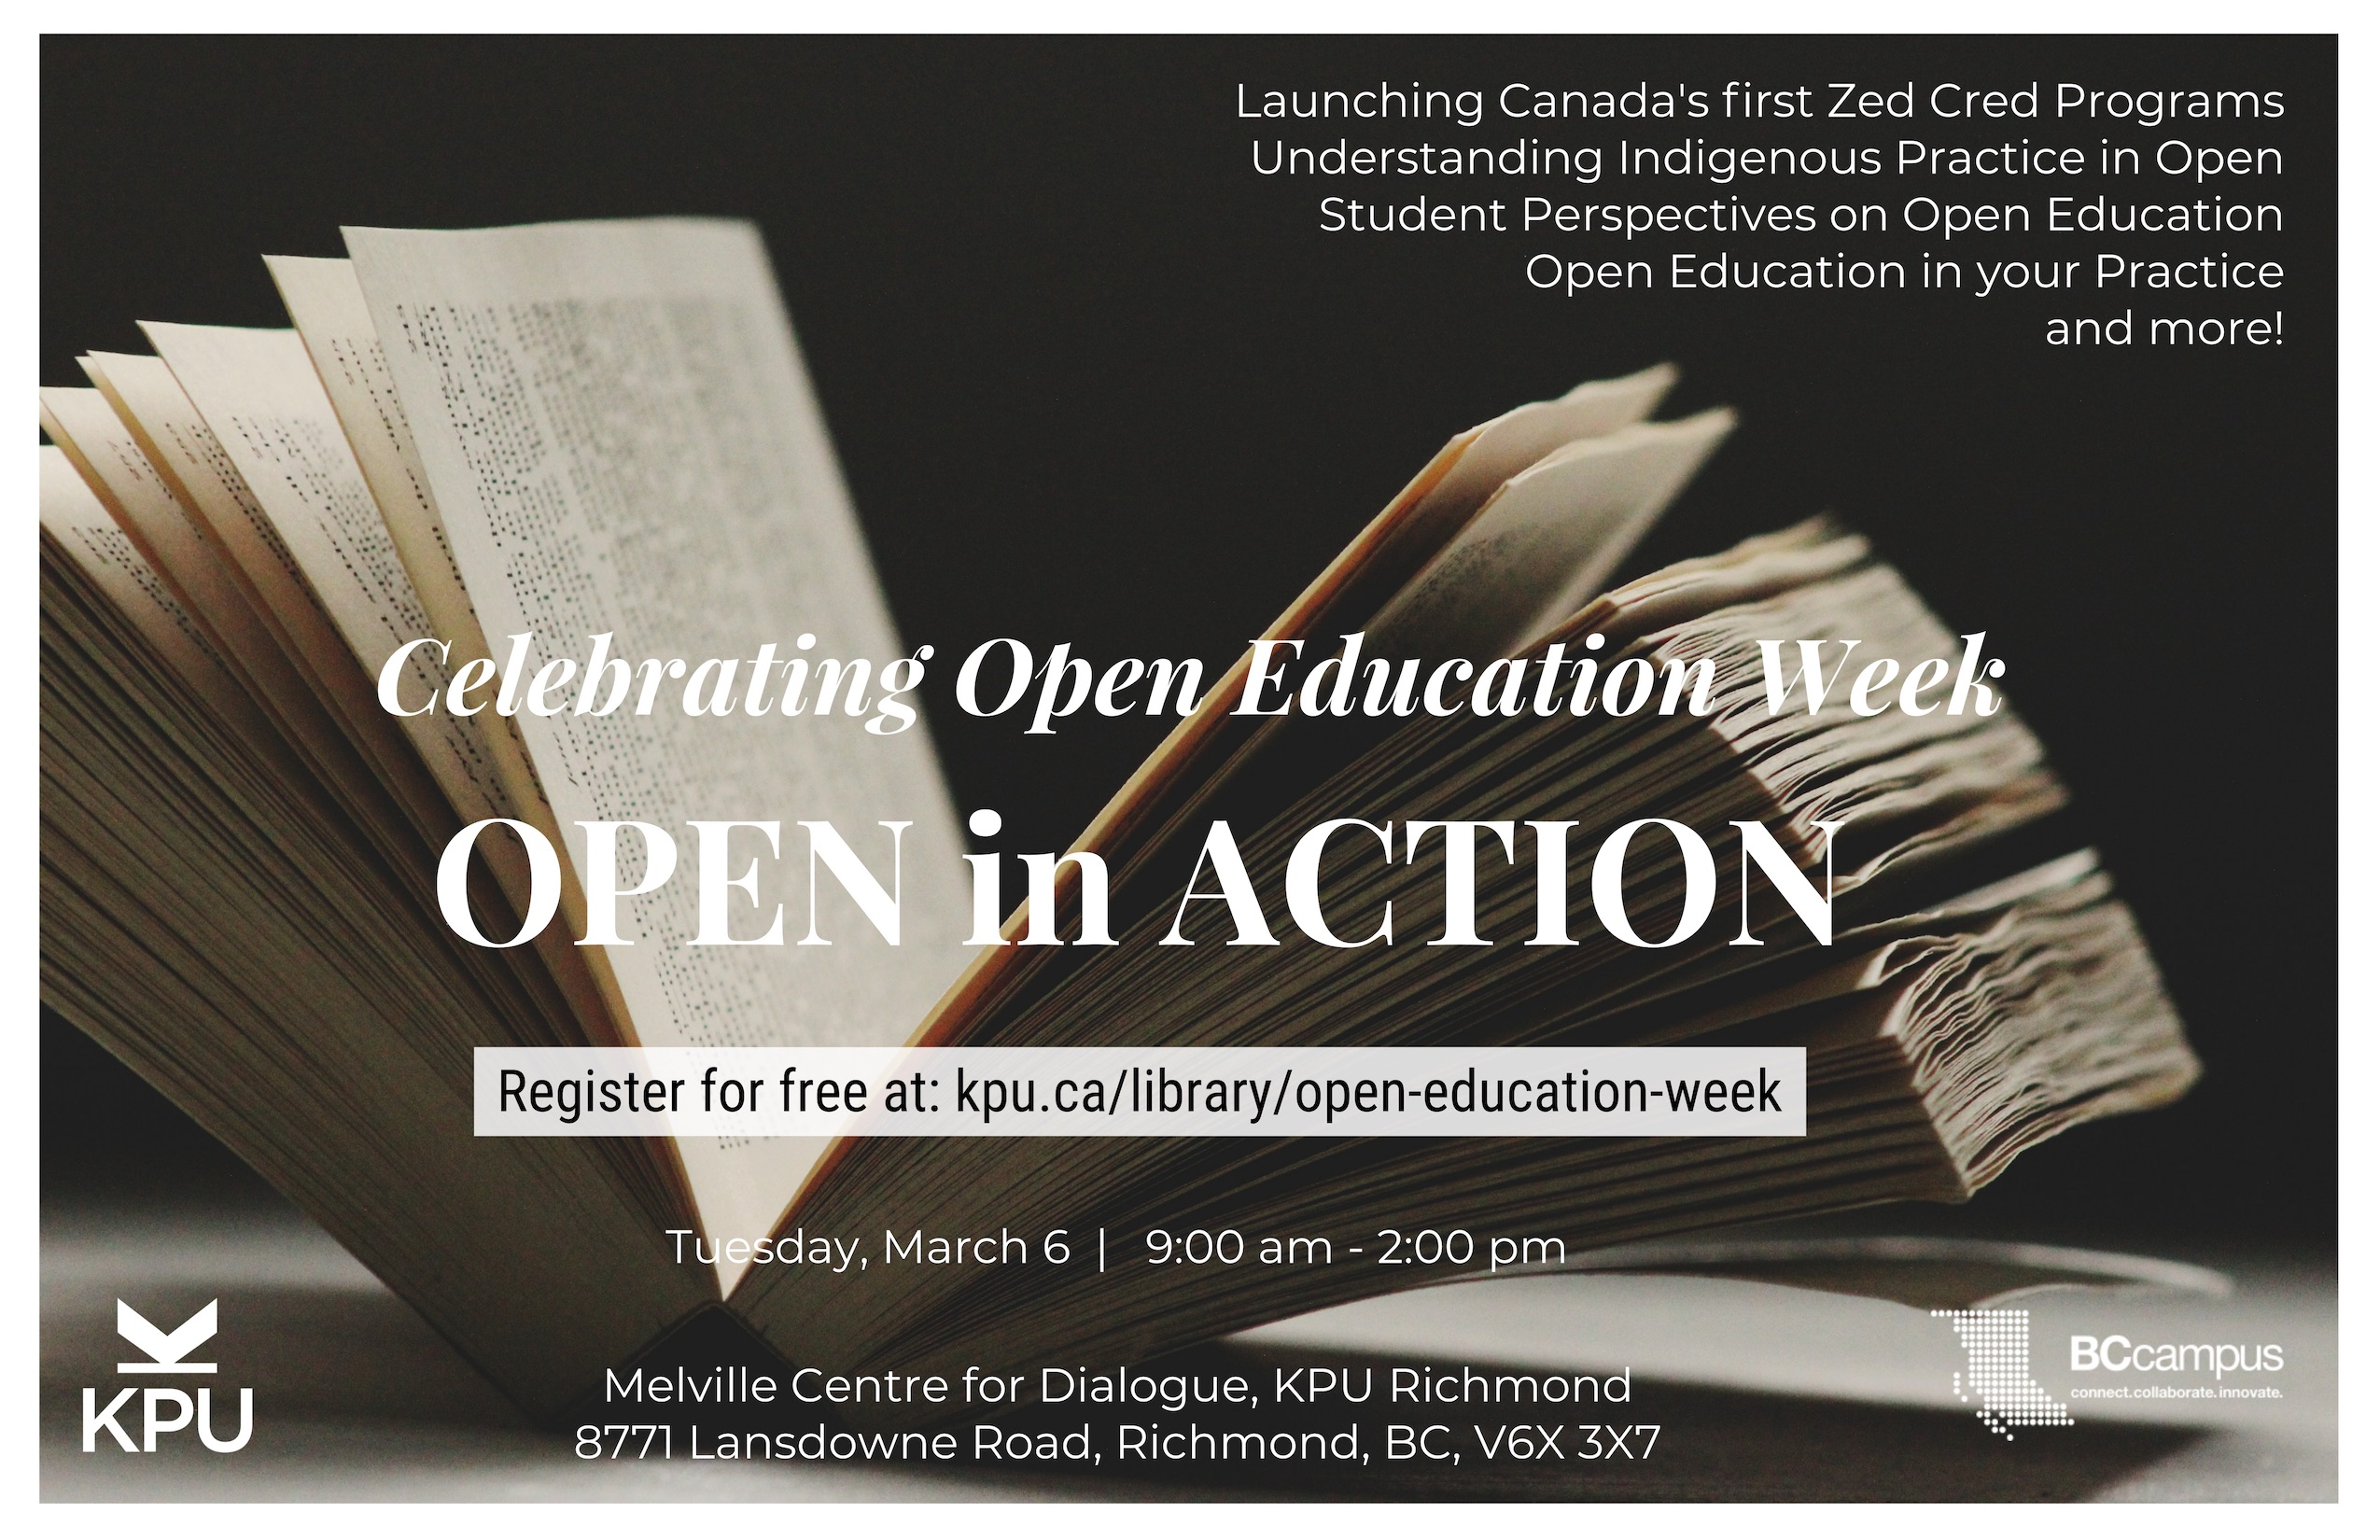 Announcement of the Open in Action event on March 6, 2018 at the KPU Richmond campus